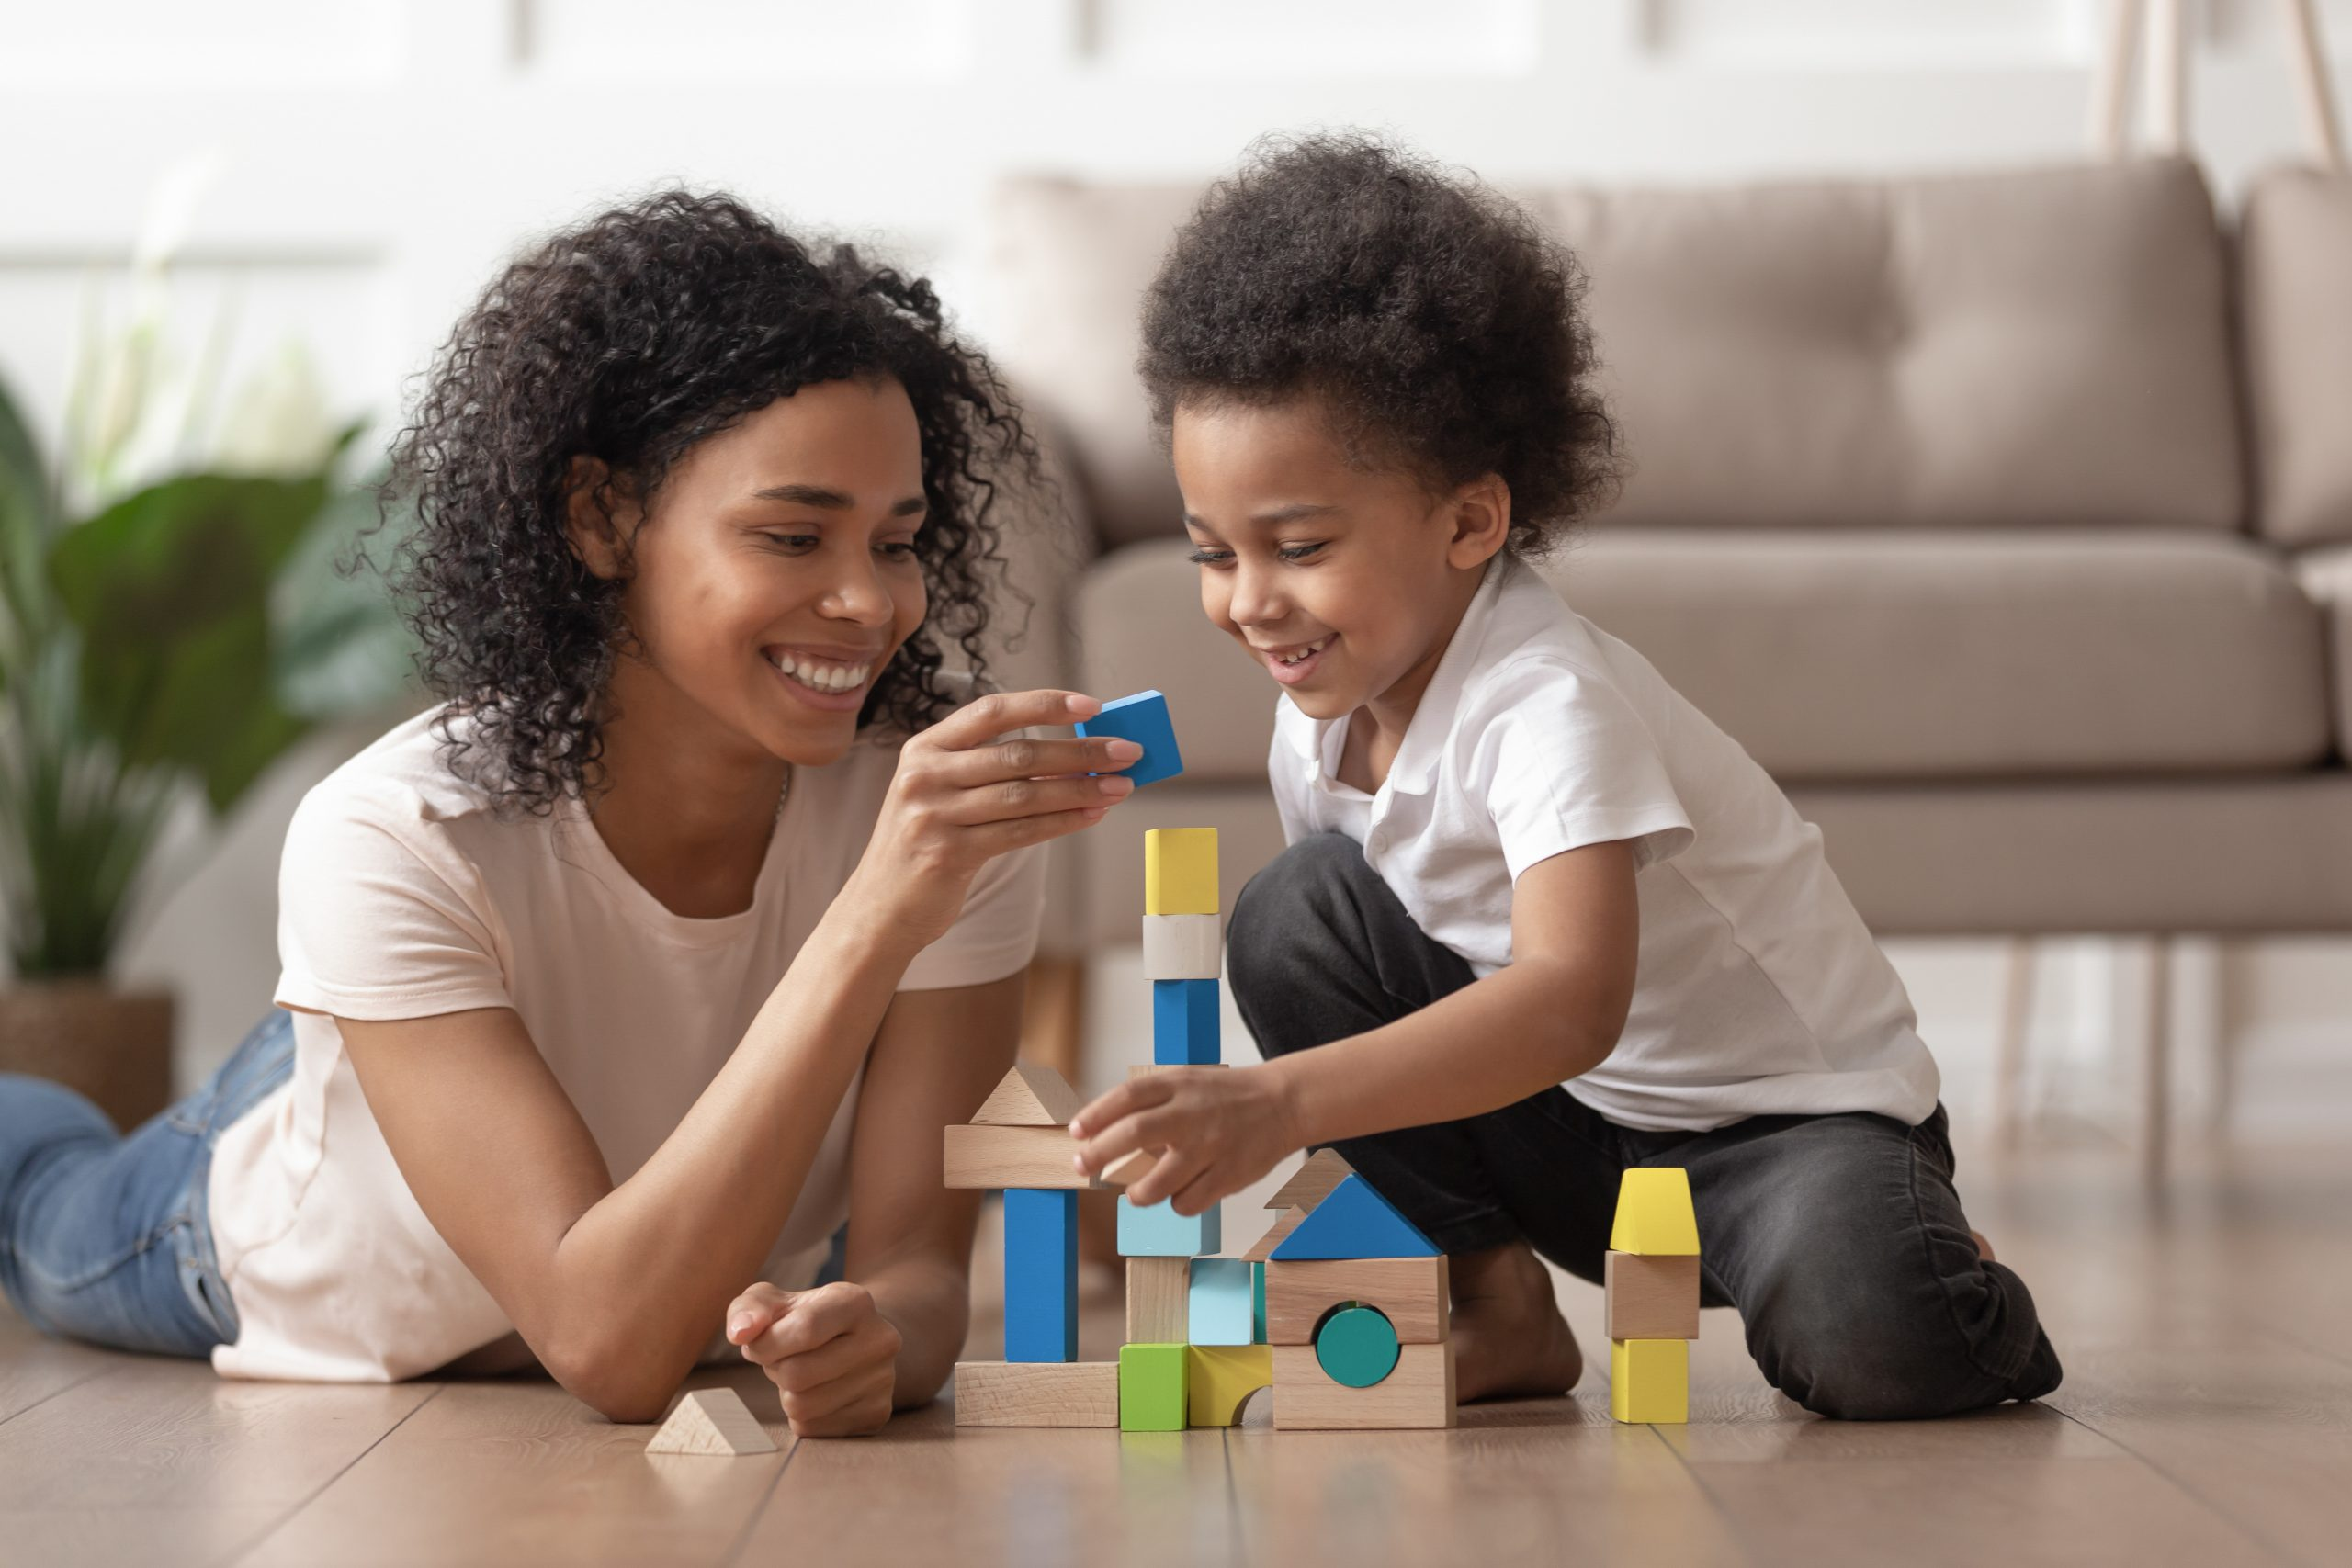 Woman with special needs child at home